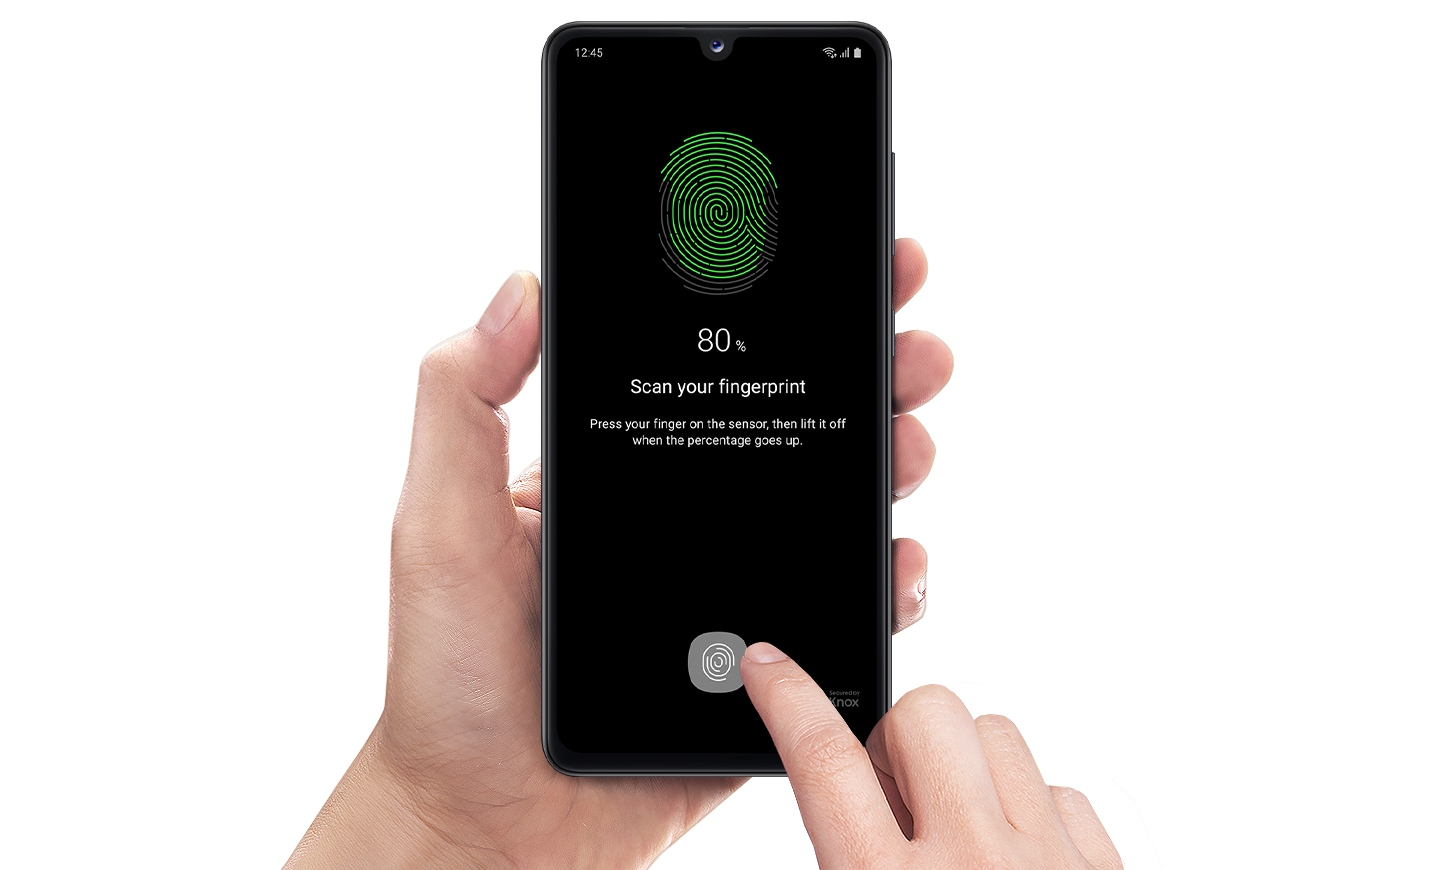 https://images.samsung.com/is/image/samsung/rs-feature-your-fingerprint-is-the-key-248990251?$FB_TYPE_A_JPG$